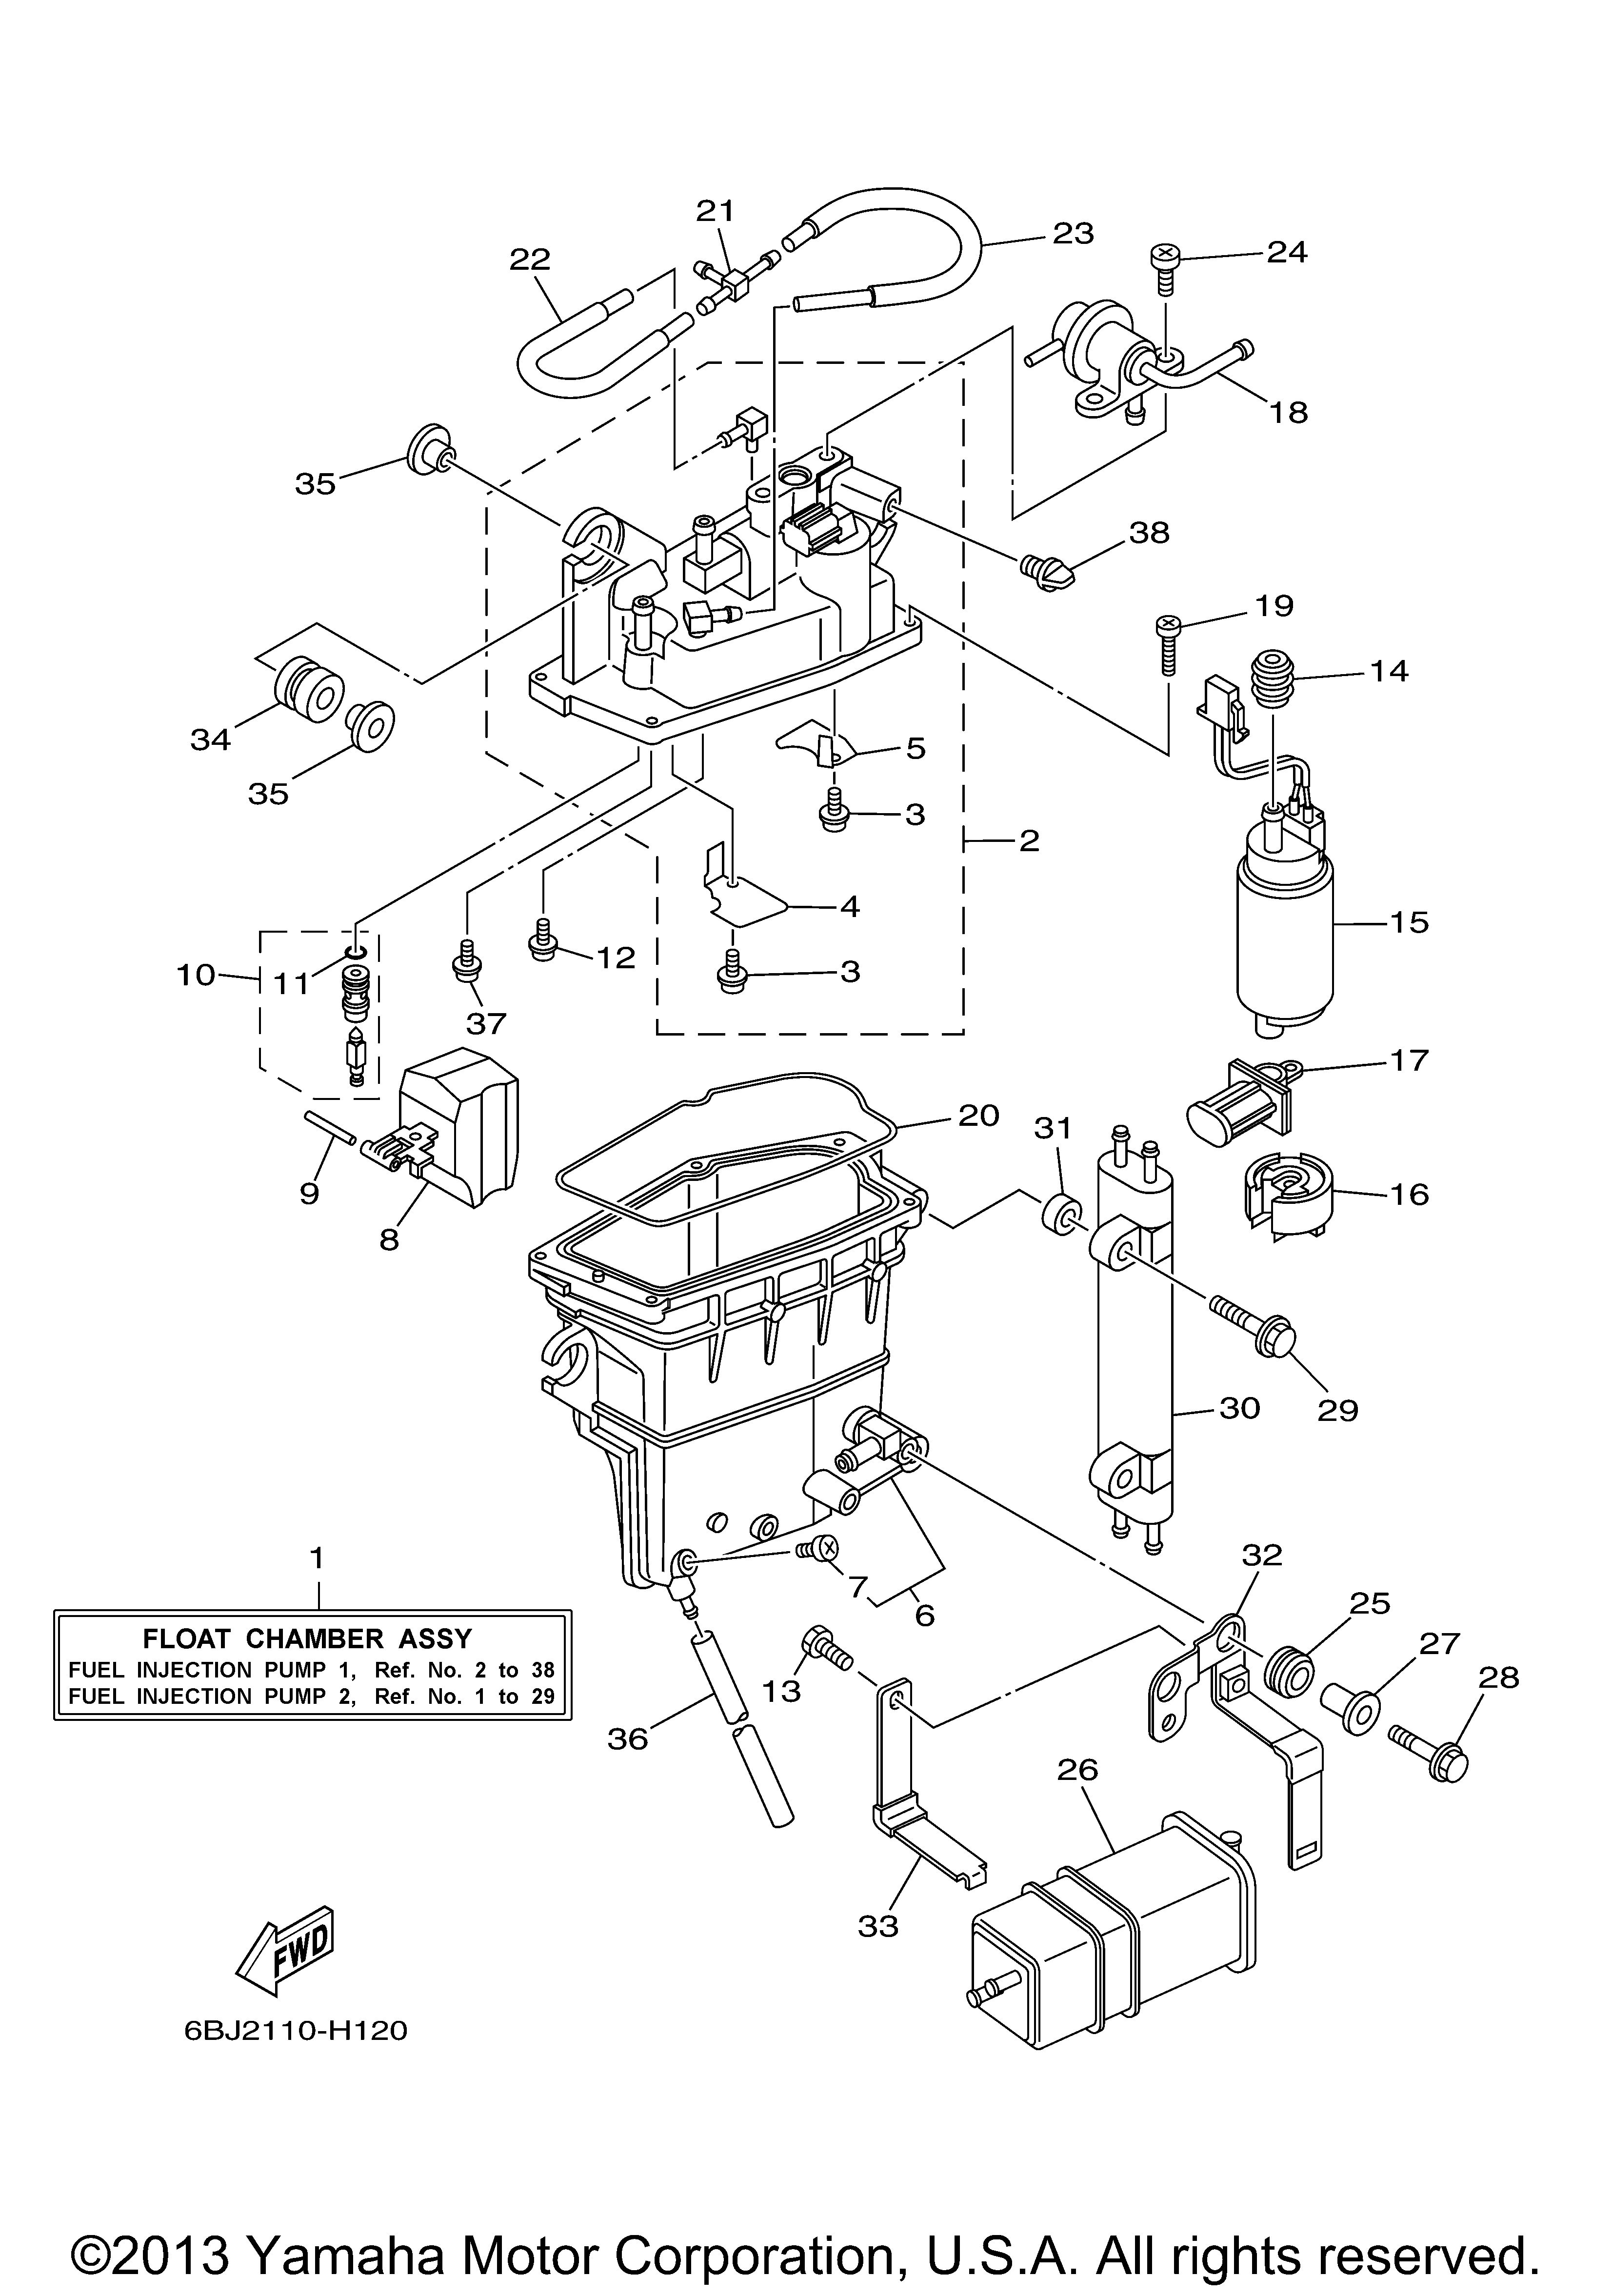 Parts of a yamaha boat motor fuel injection diagram for Electric motor parts near me